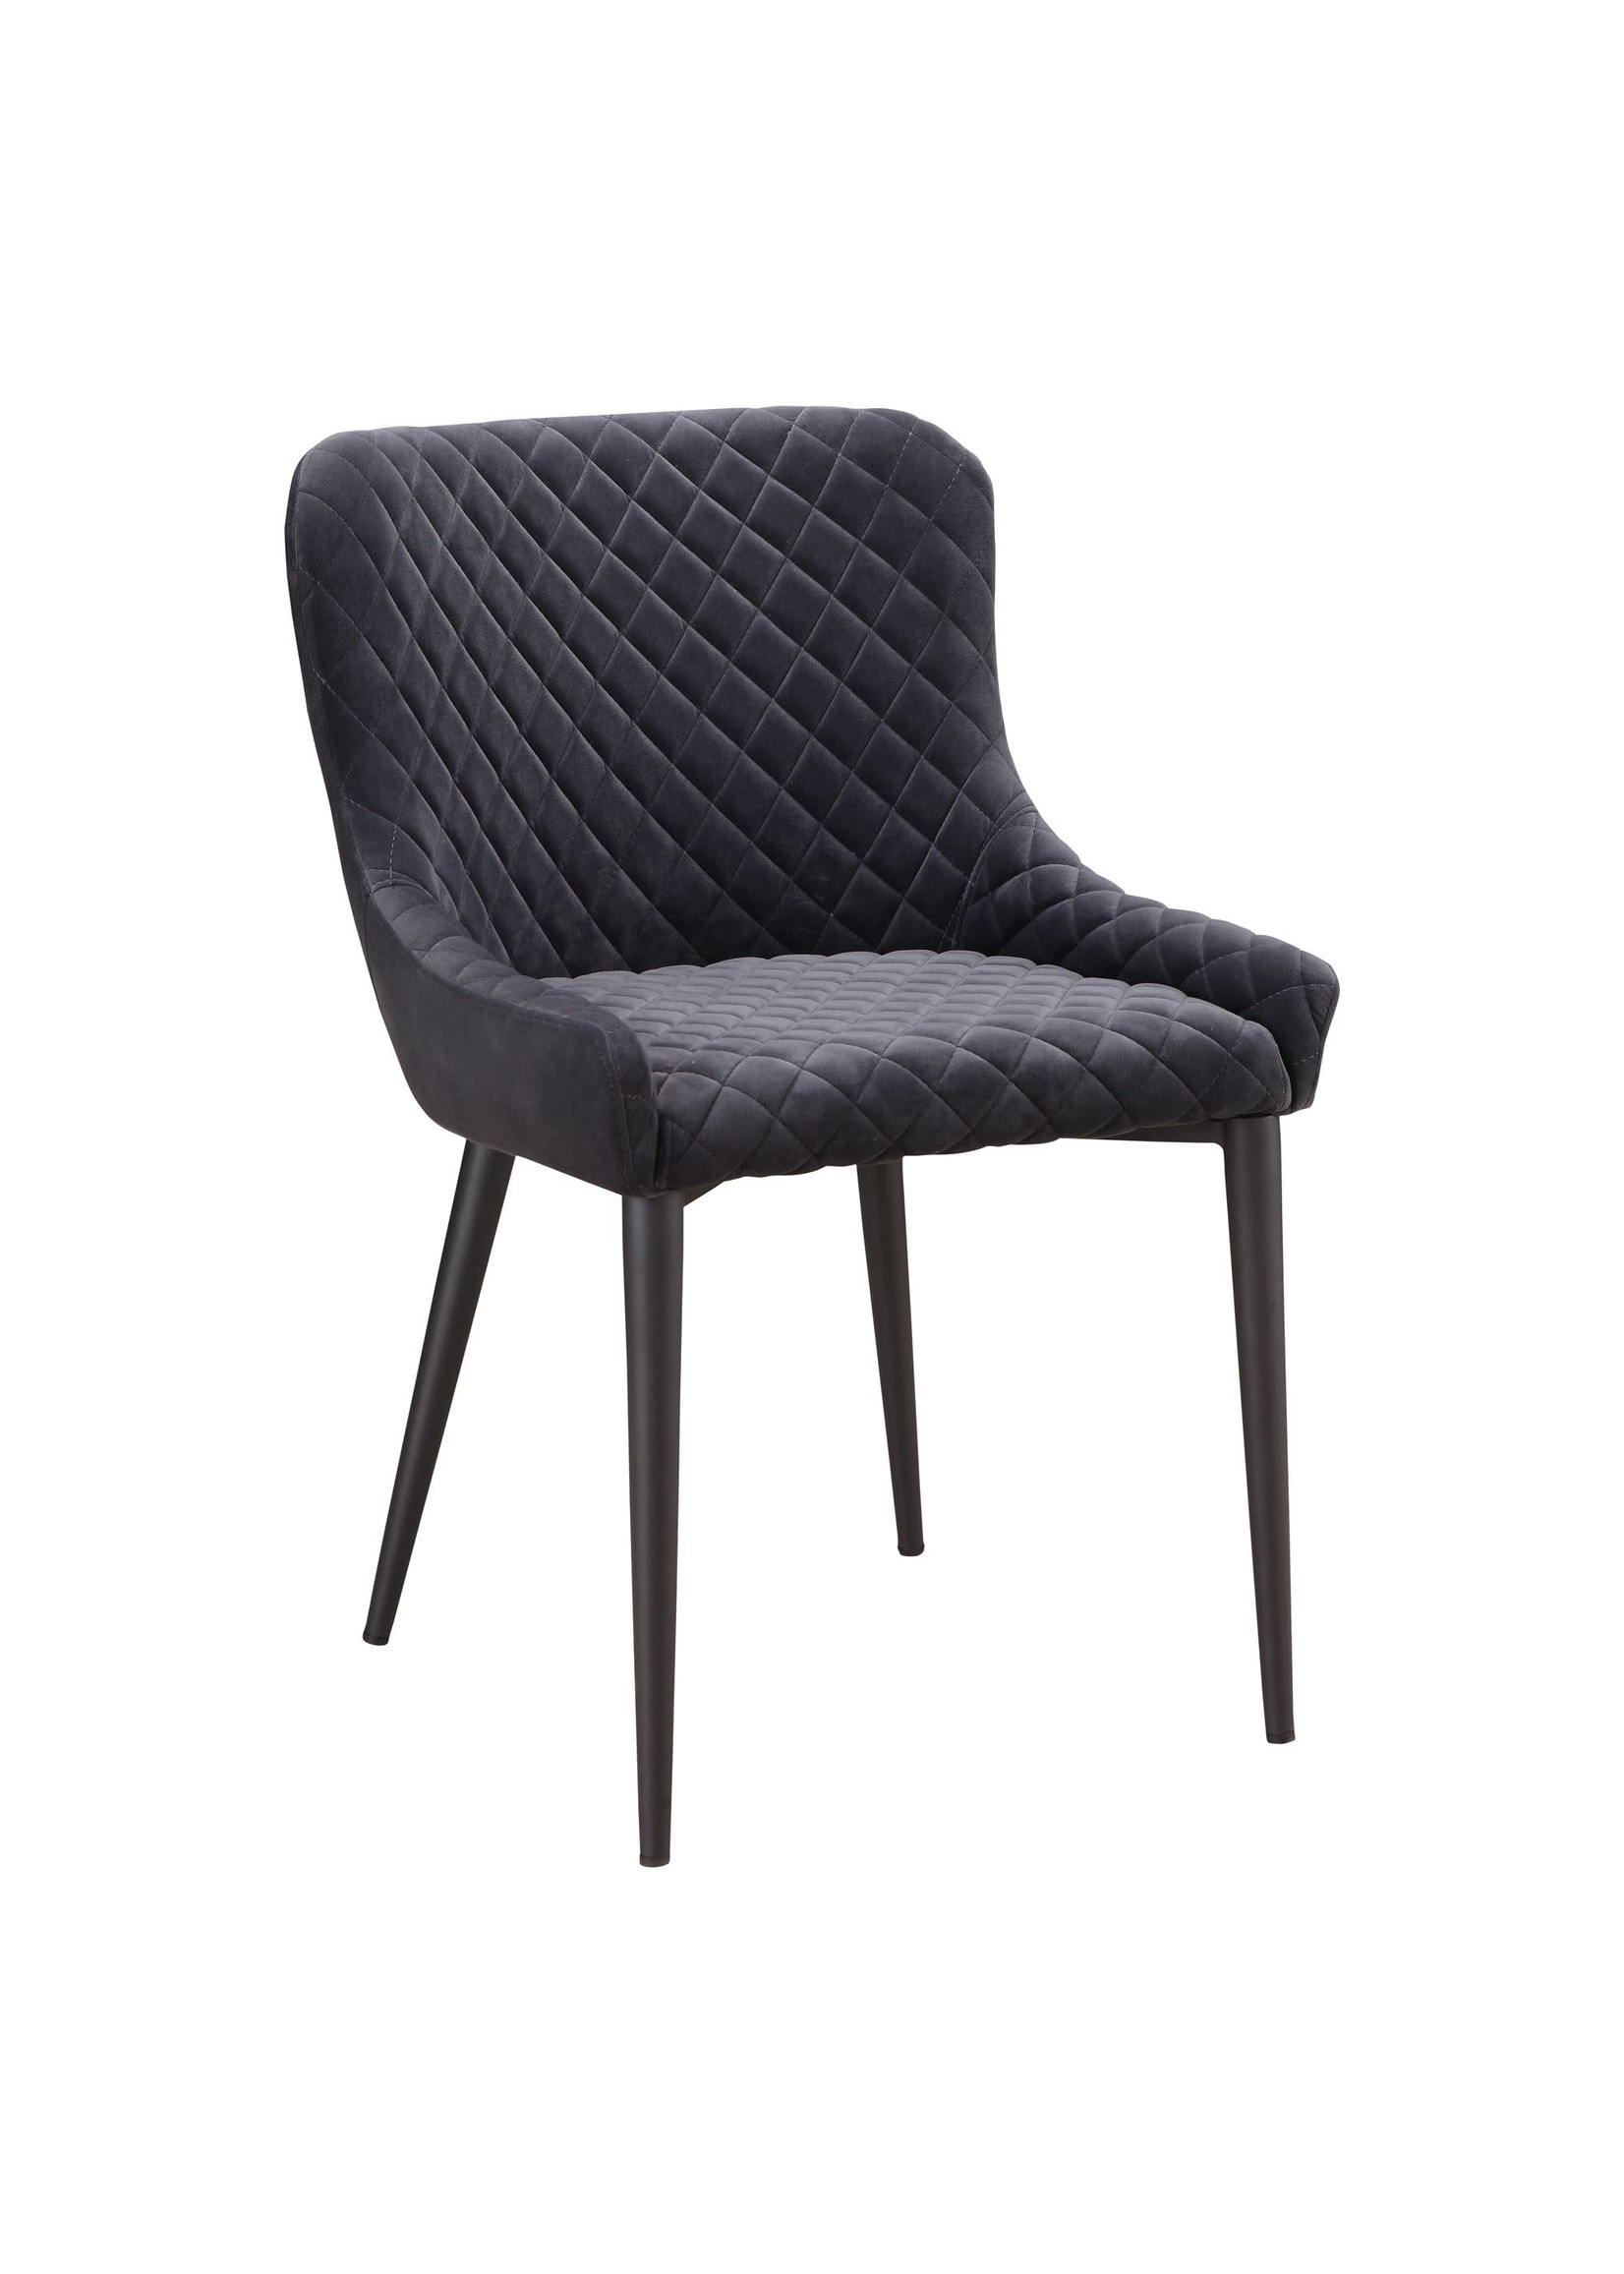 Moes Home Collection Etta Dining Chair Dark Grey by MOES